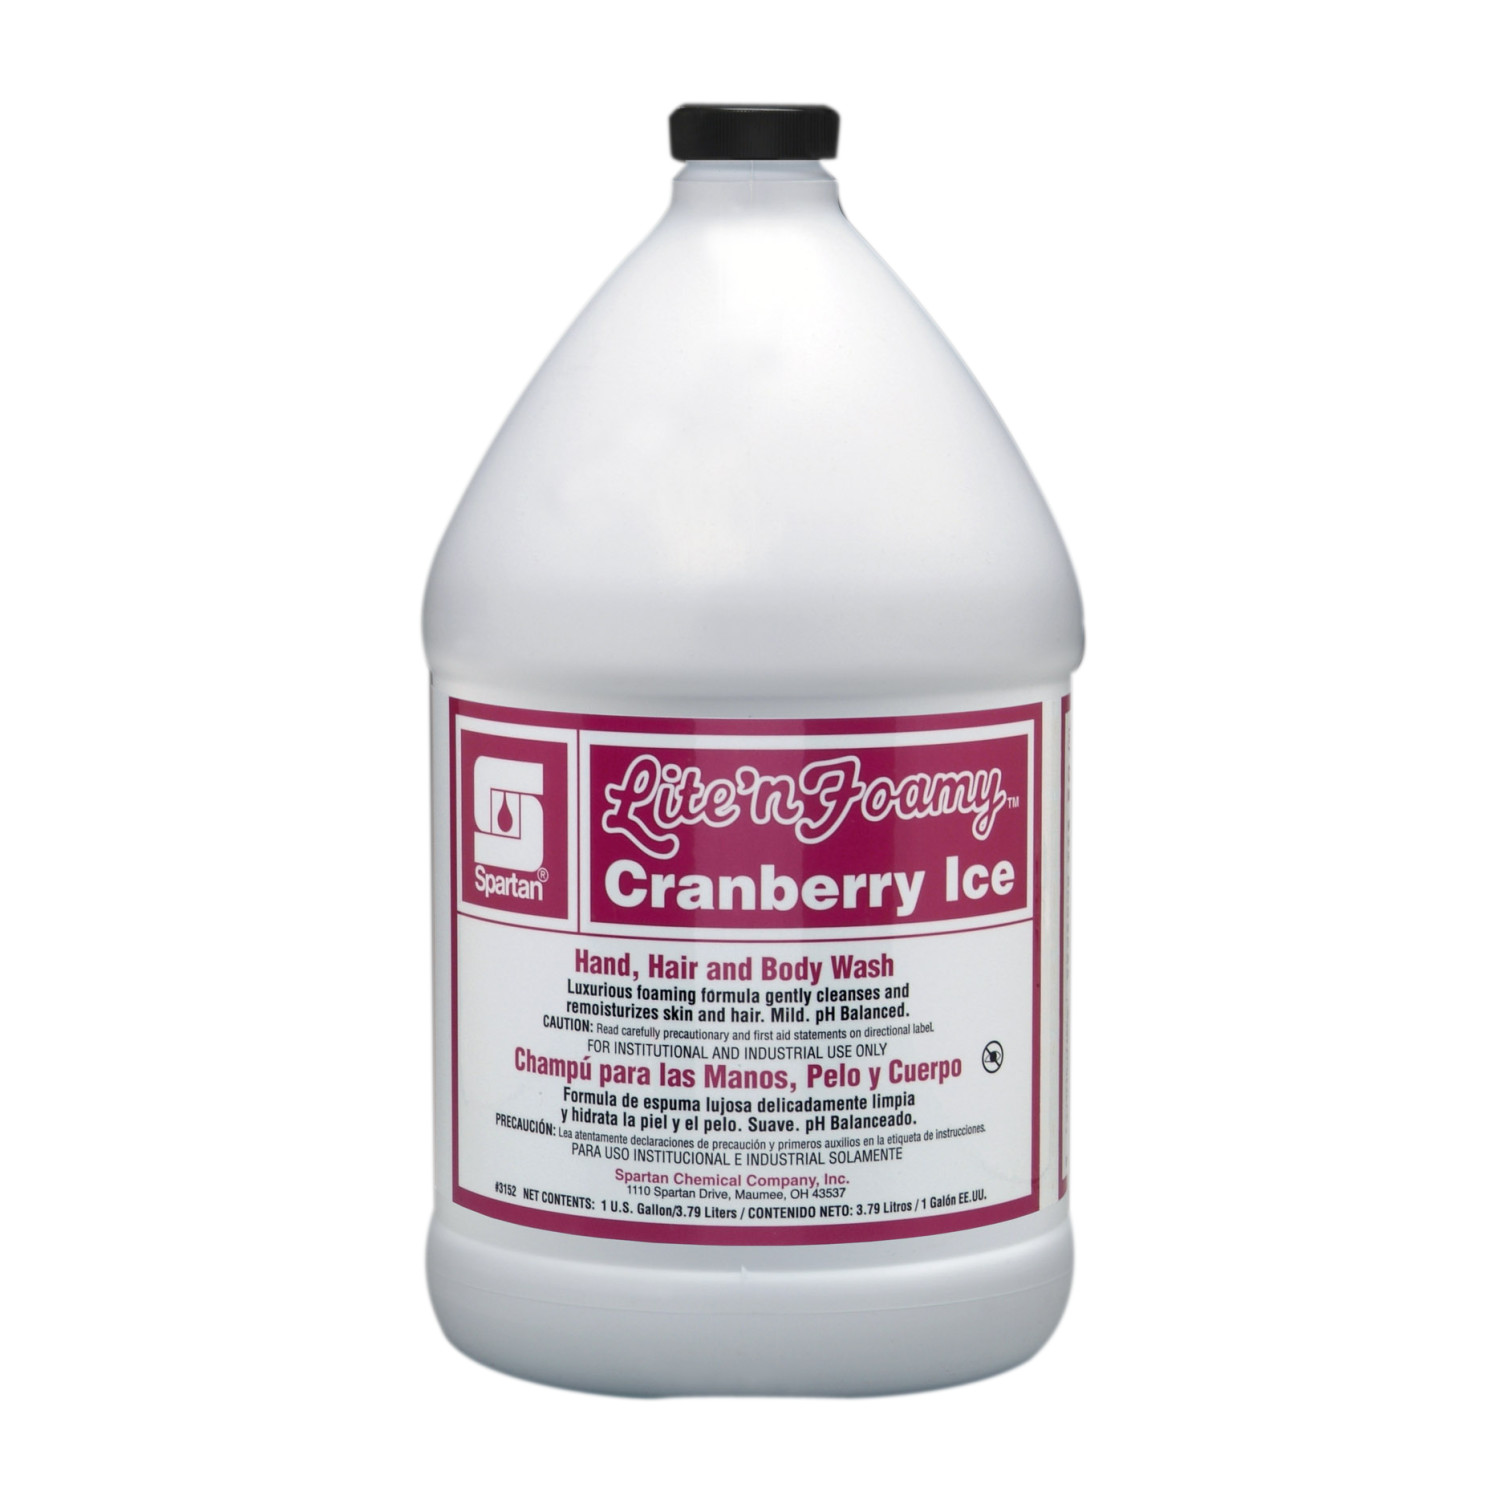 LITE N FOAMY CRANBERRY ICE FOAMING HAND SOAP(4)#3152